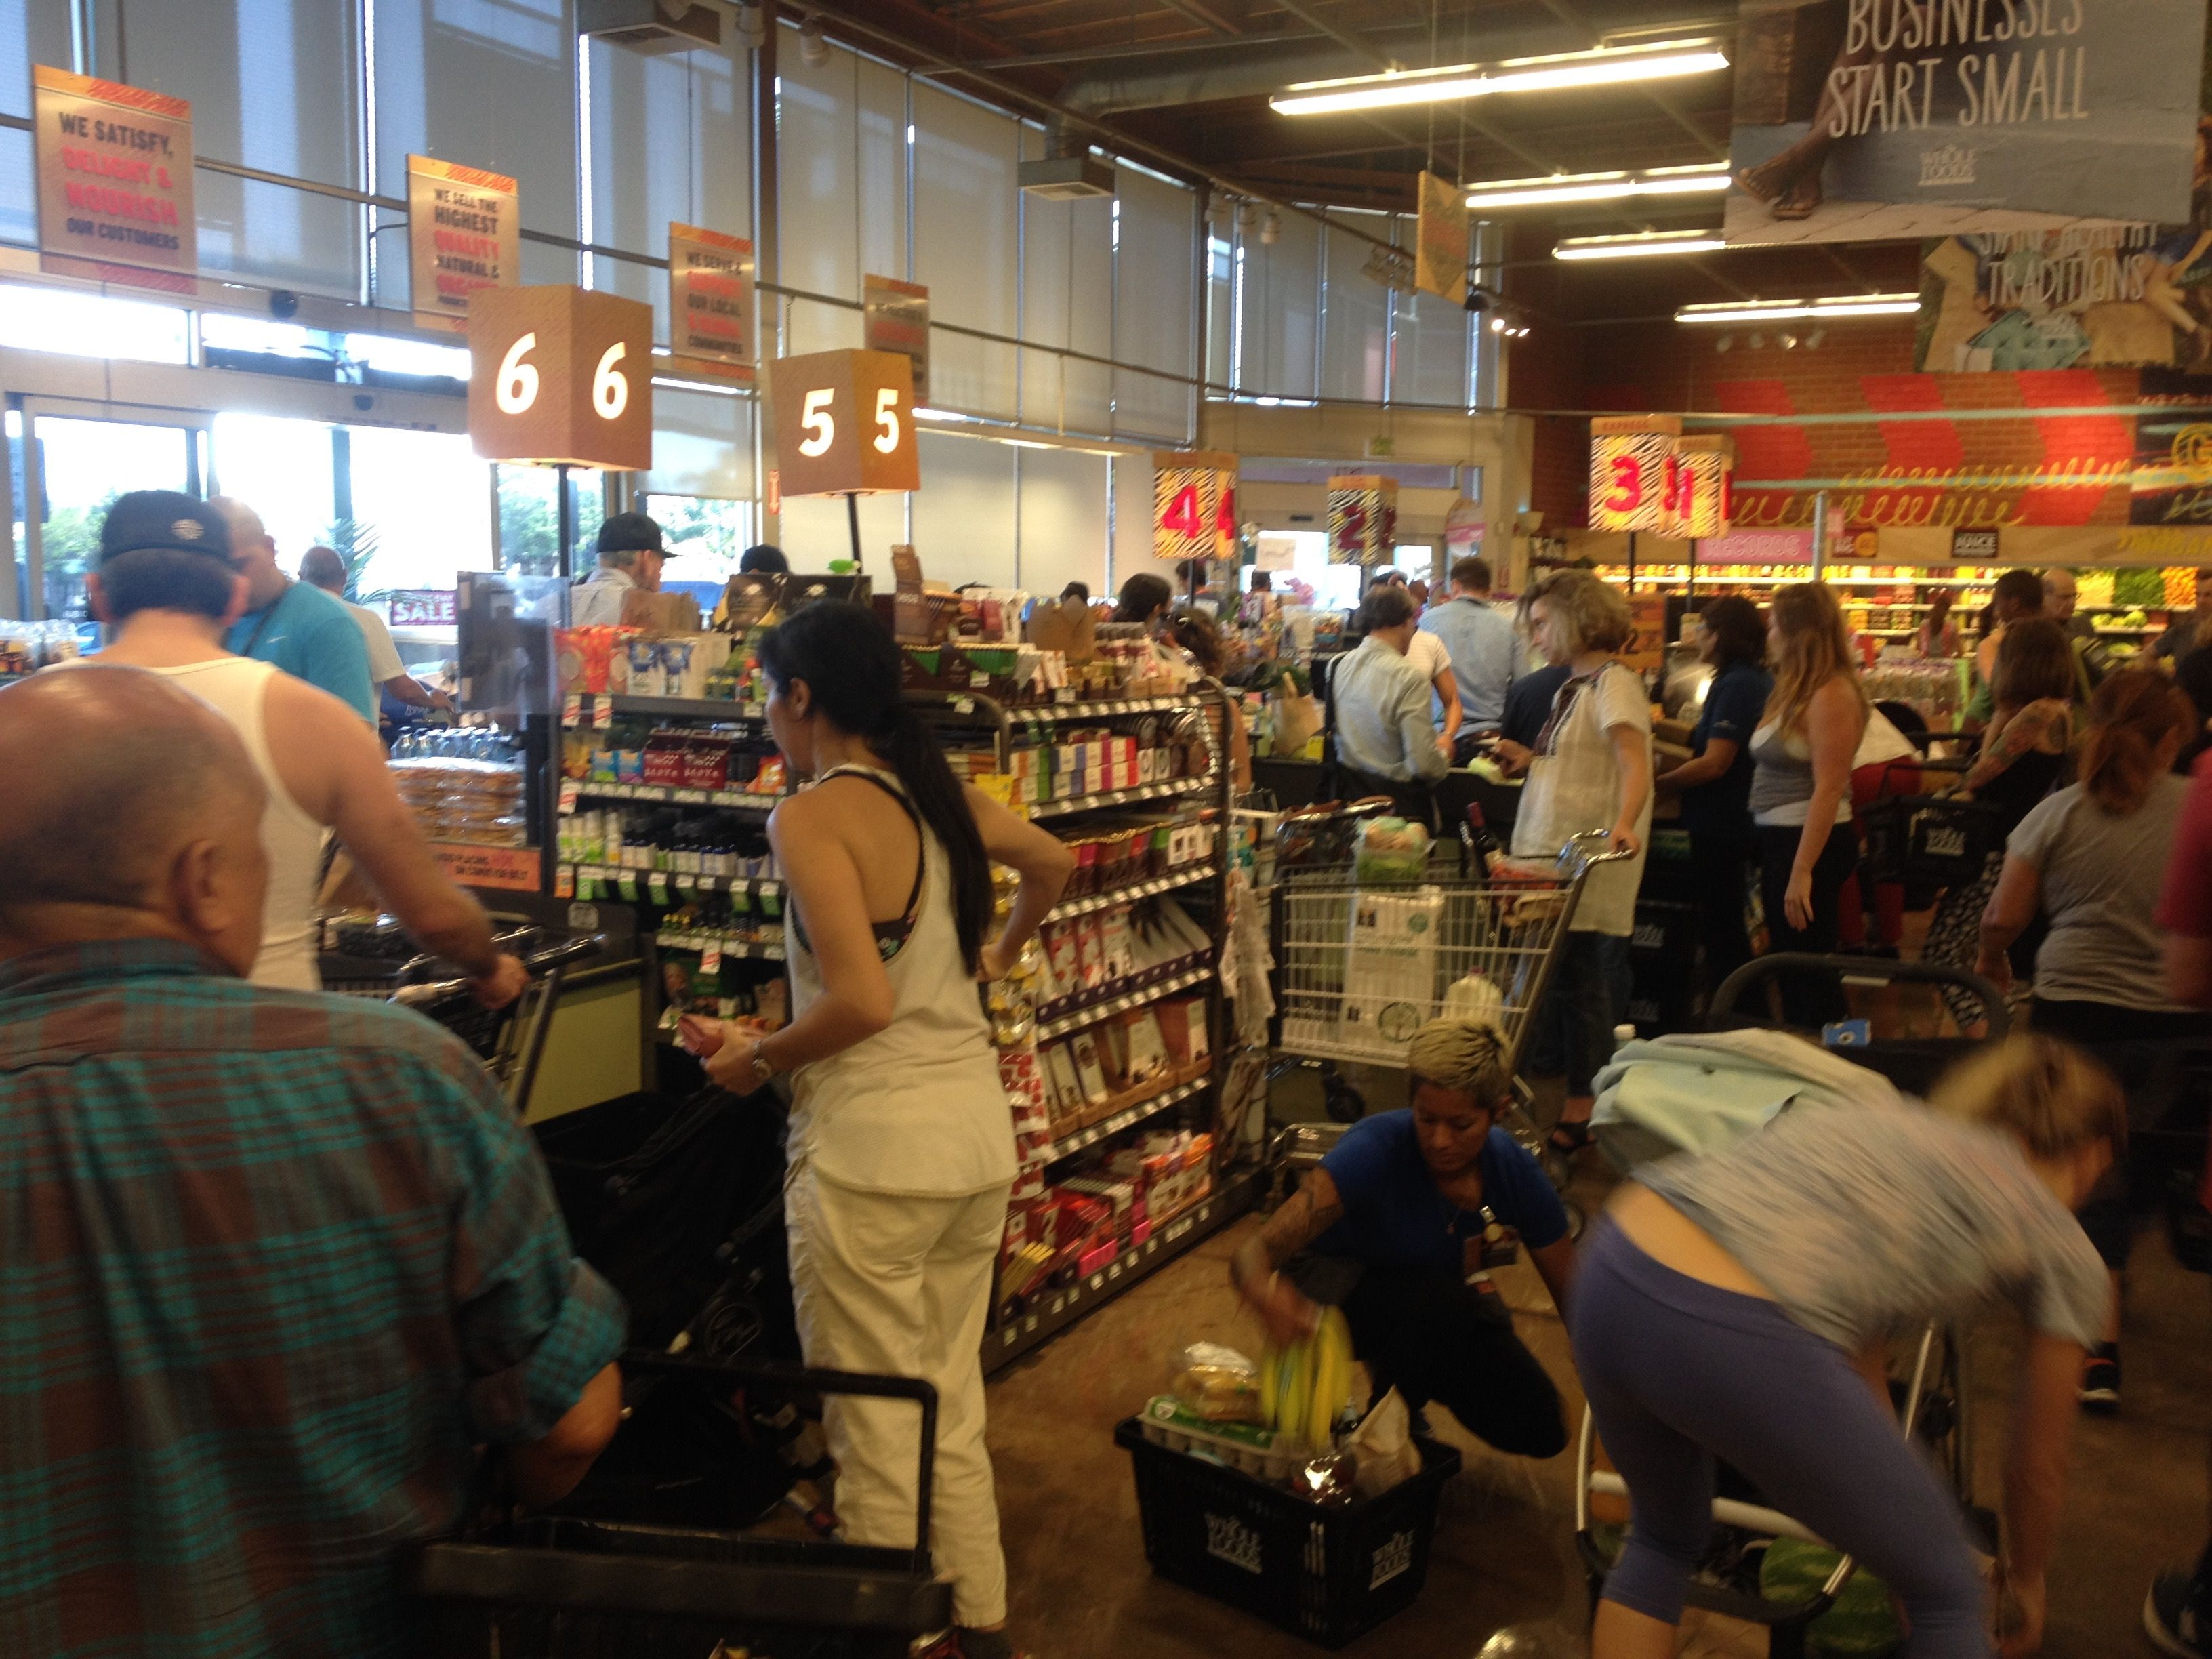 Busy day at whole foods the check out lines are backing